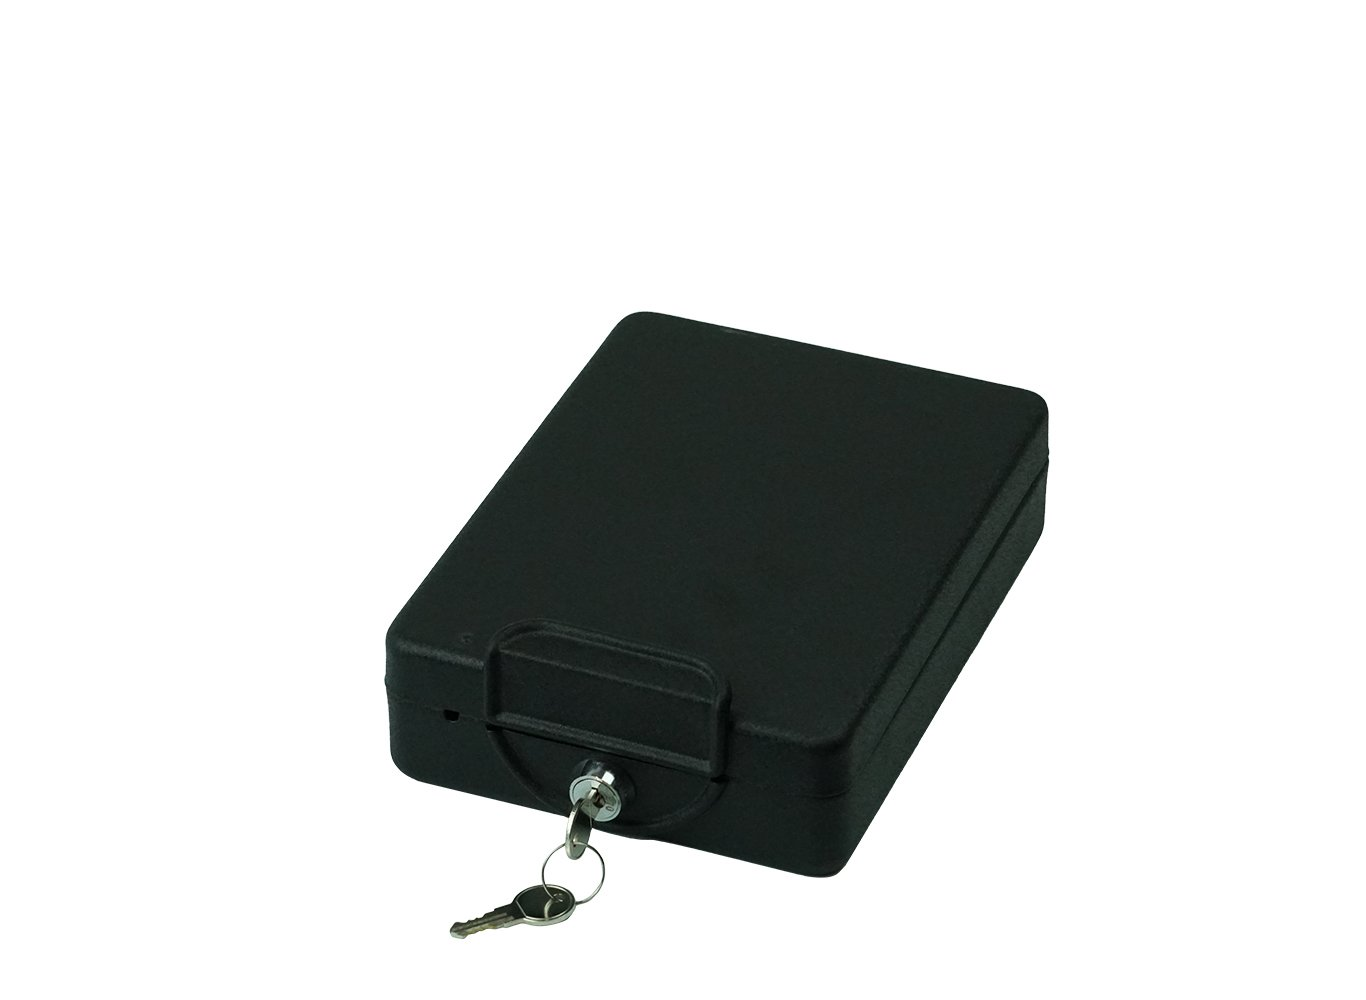 Real Work Hide-A-Way Car Safe with key lock, mounting bracket and cable